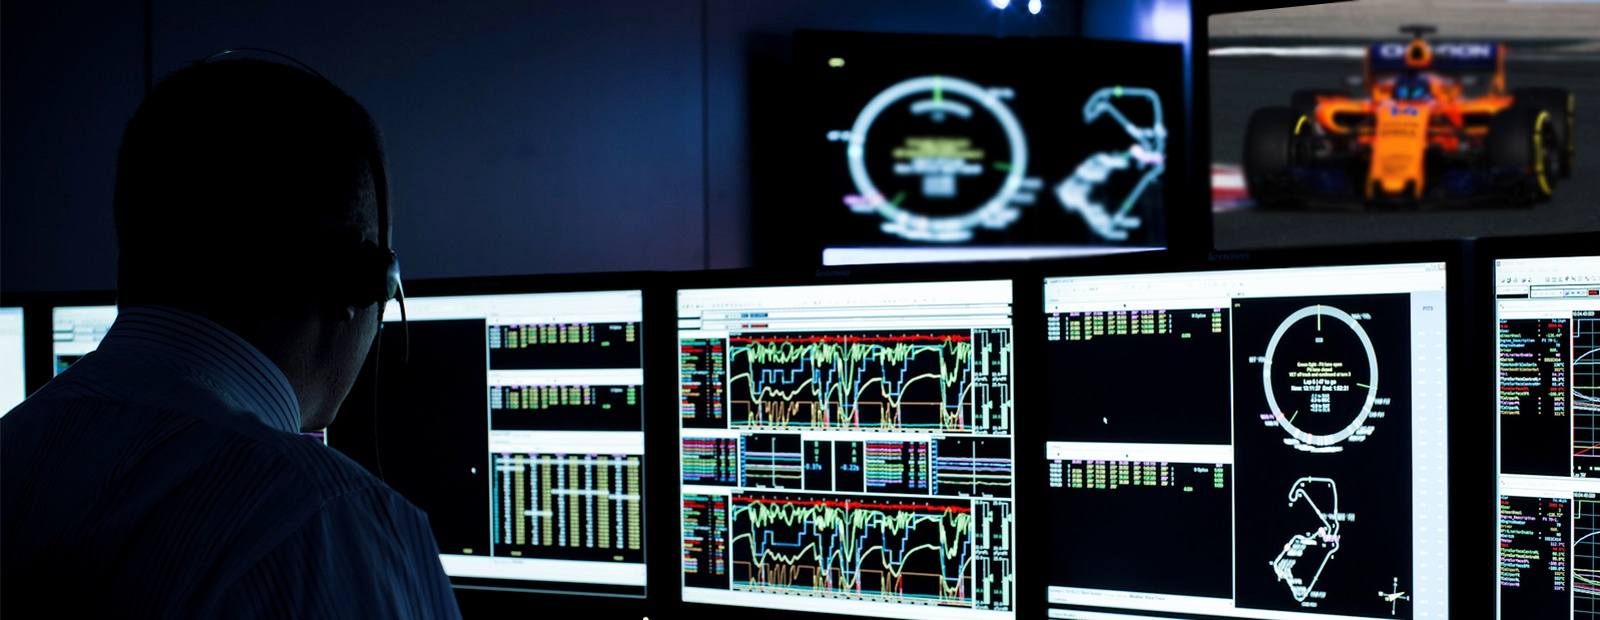 McLAREN APPLIED TECHNOLOGIES ANNOUNCED IN GOVERNMENT'S £25M UK DIGITAL STRATEGY